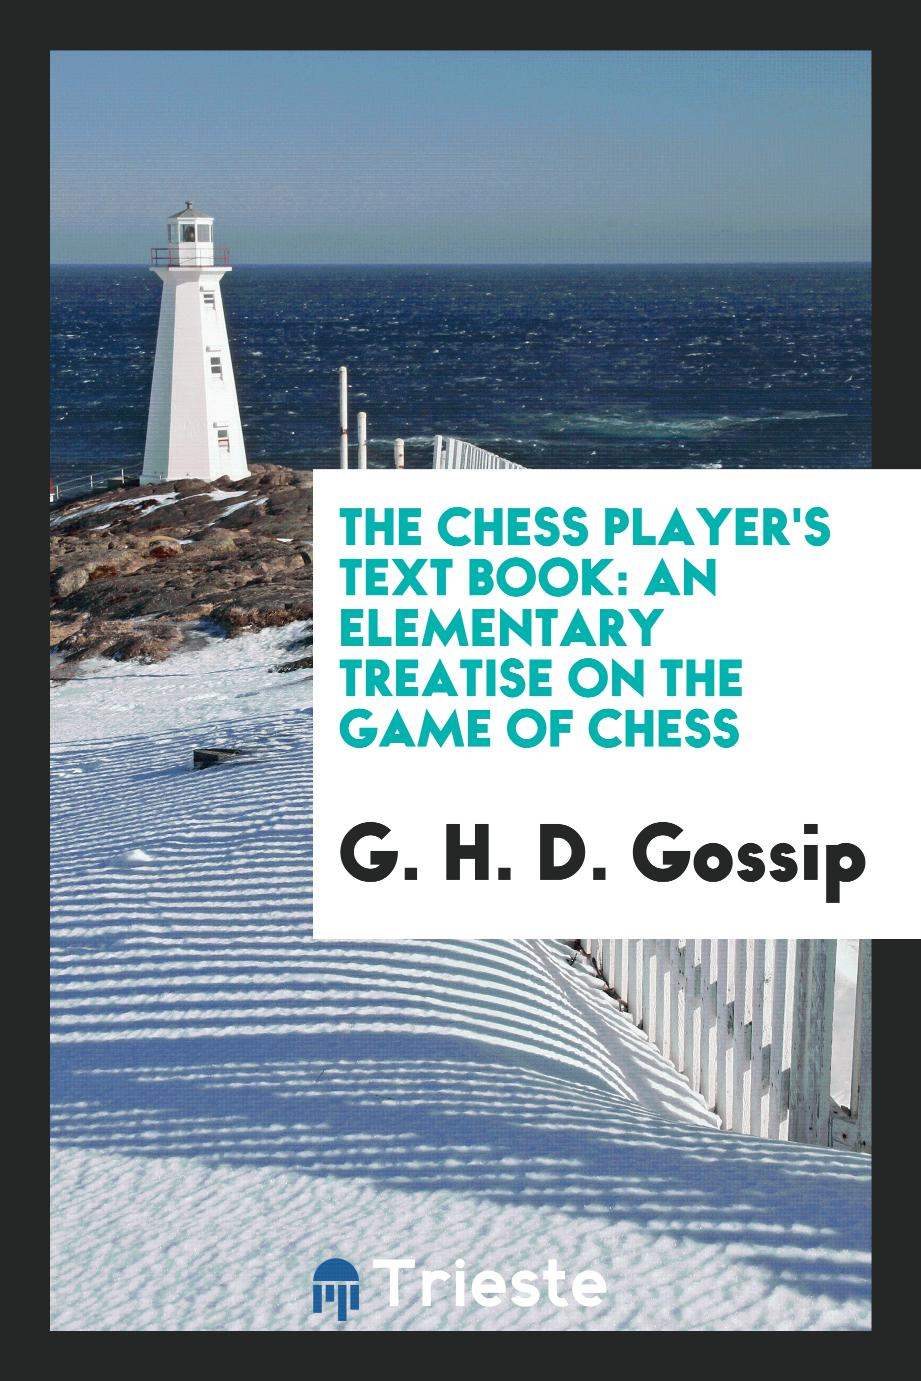 The Chess Player's Text Book: An Elementary Treatise on the Game of Chess